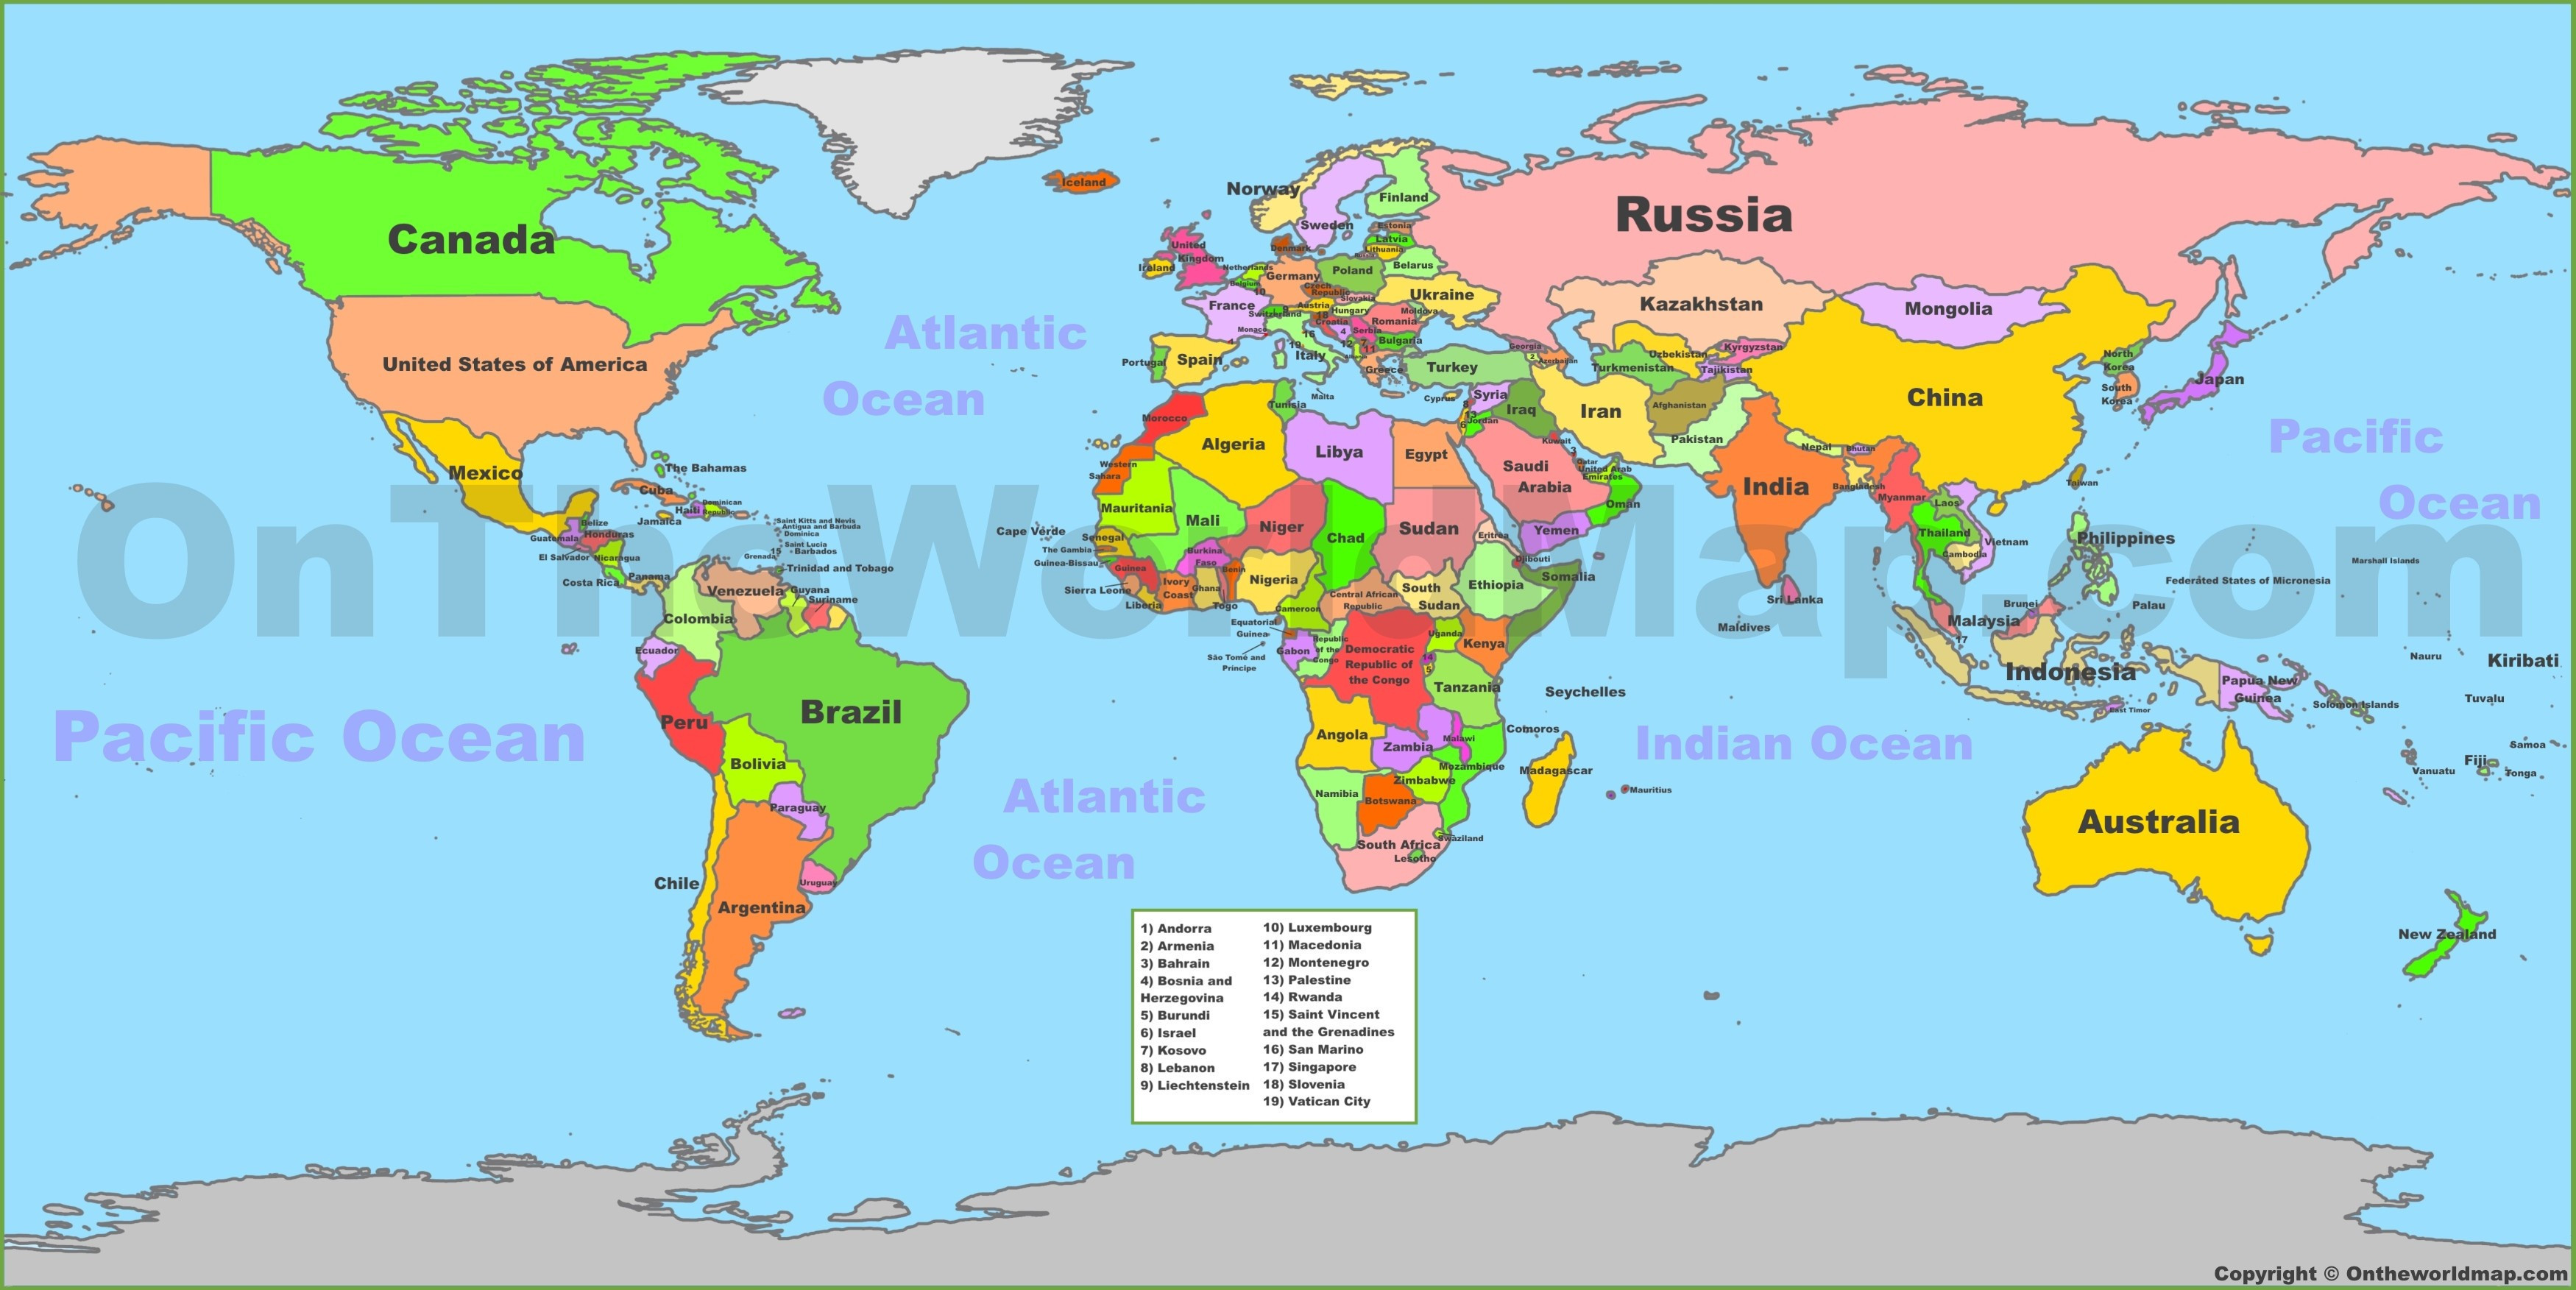 Printable Map 7 Continents New Political World Map Continents Printable Maps World Map With